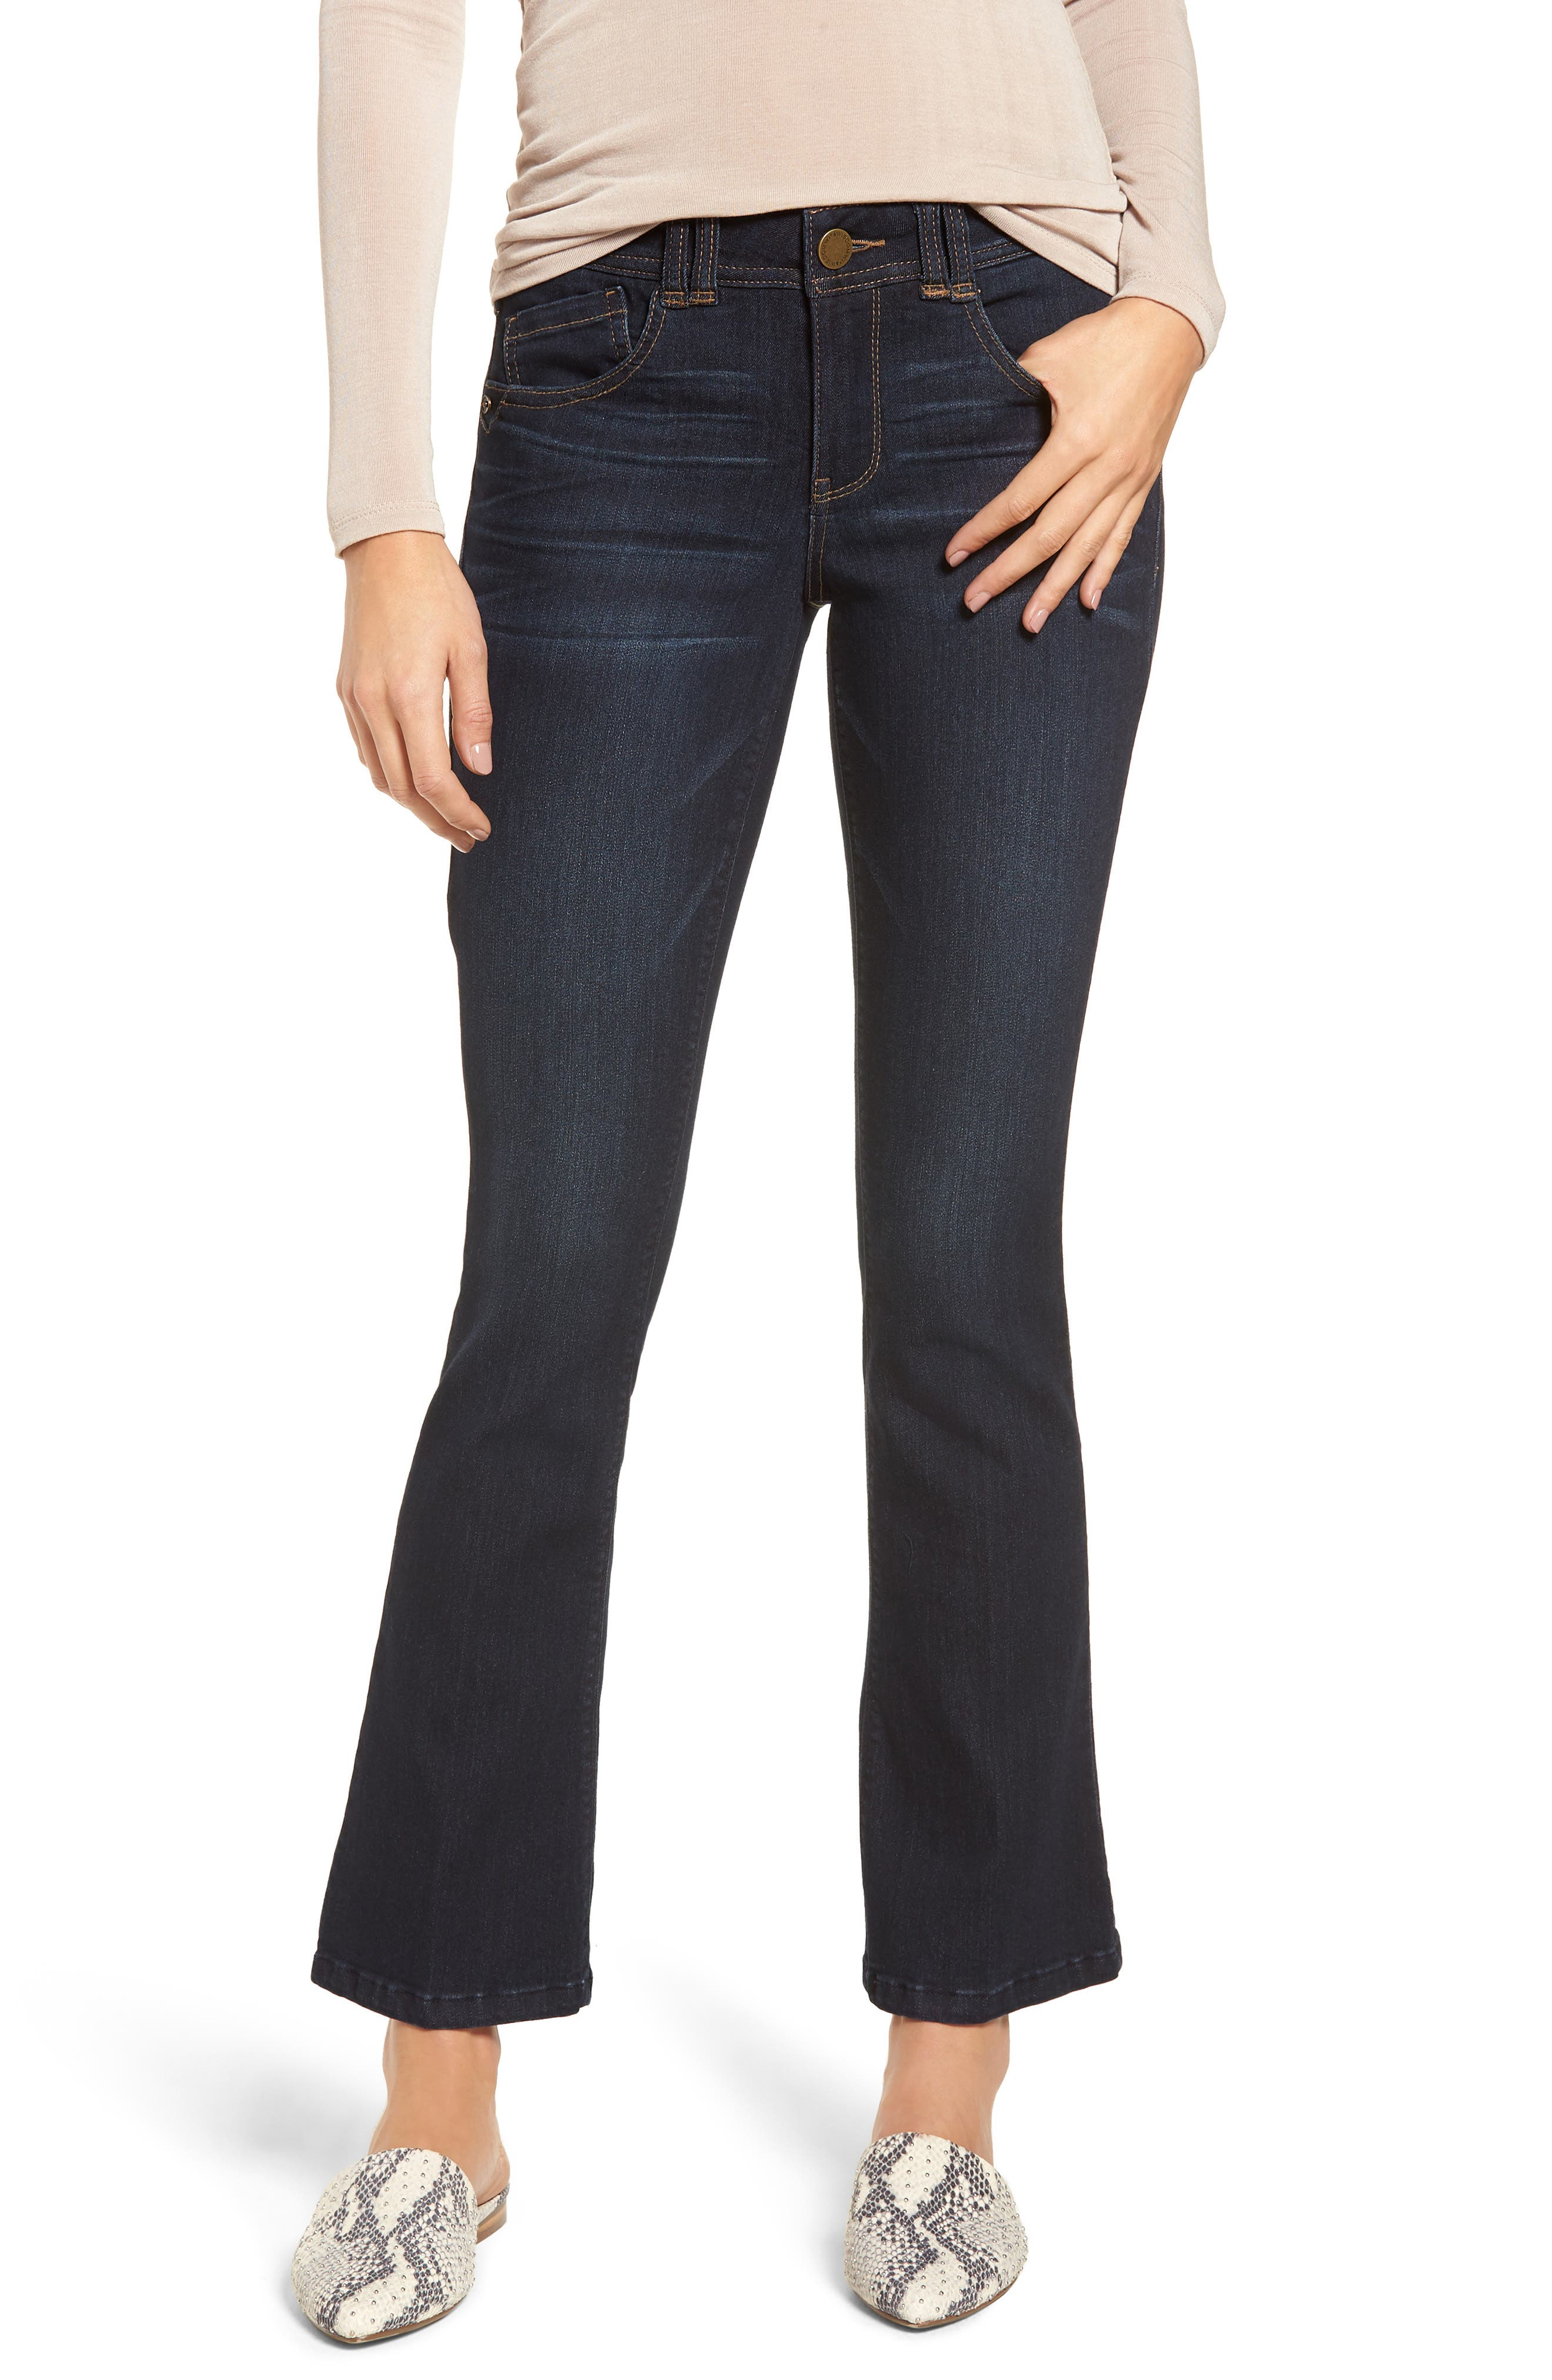 Ab-solution Itty Bitty Bootcut Jeans,                             Main thumbnail 1, color,                             In-Indigo